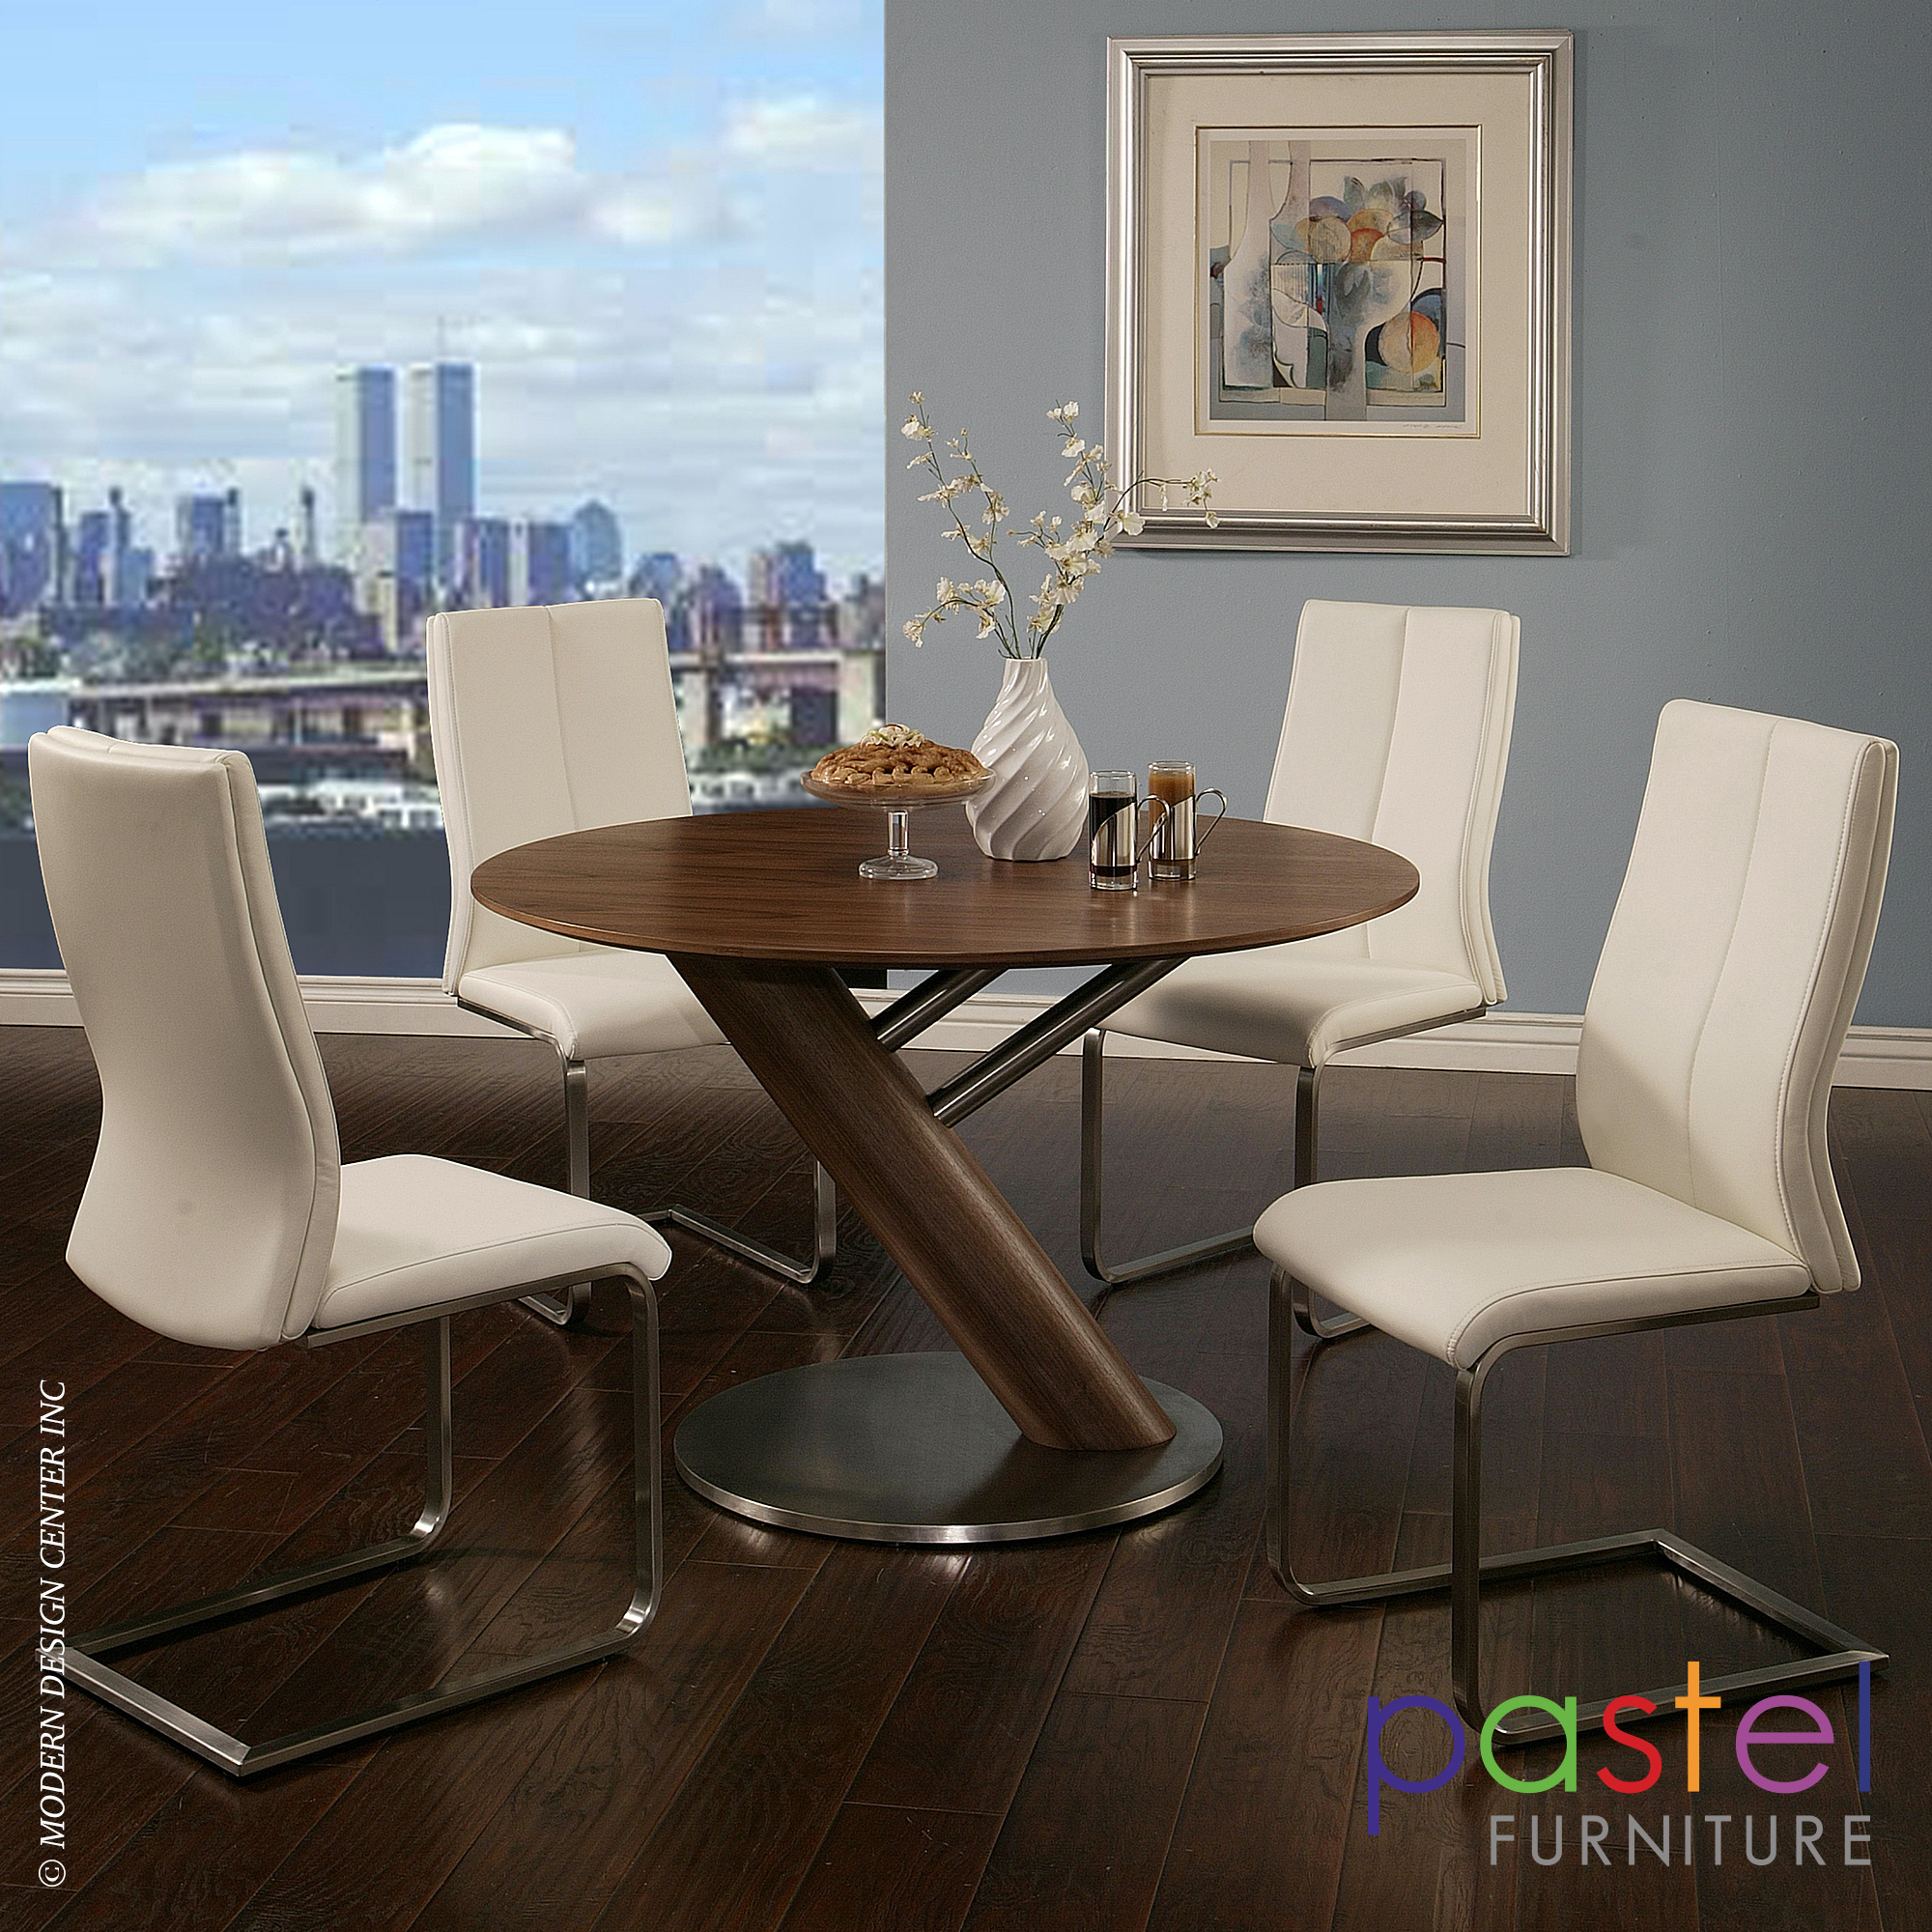 Indiana Table With Olander Chair Set Pastel Furniture